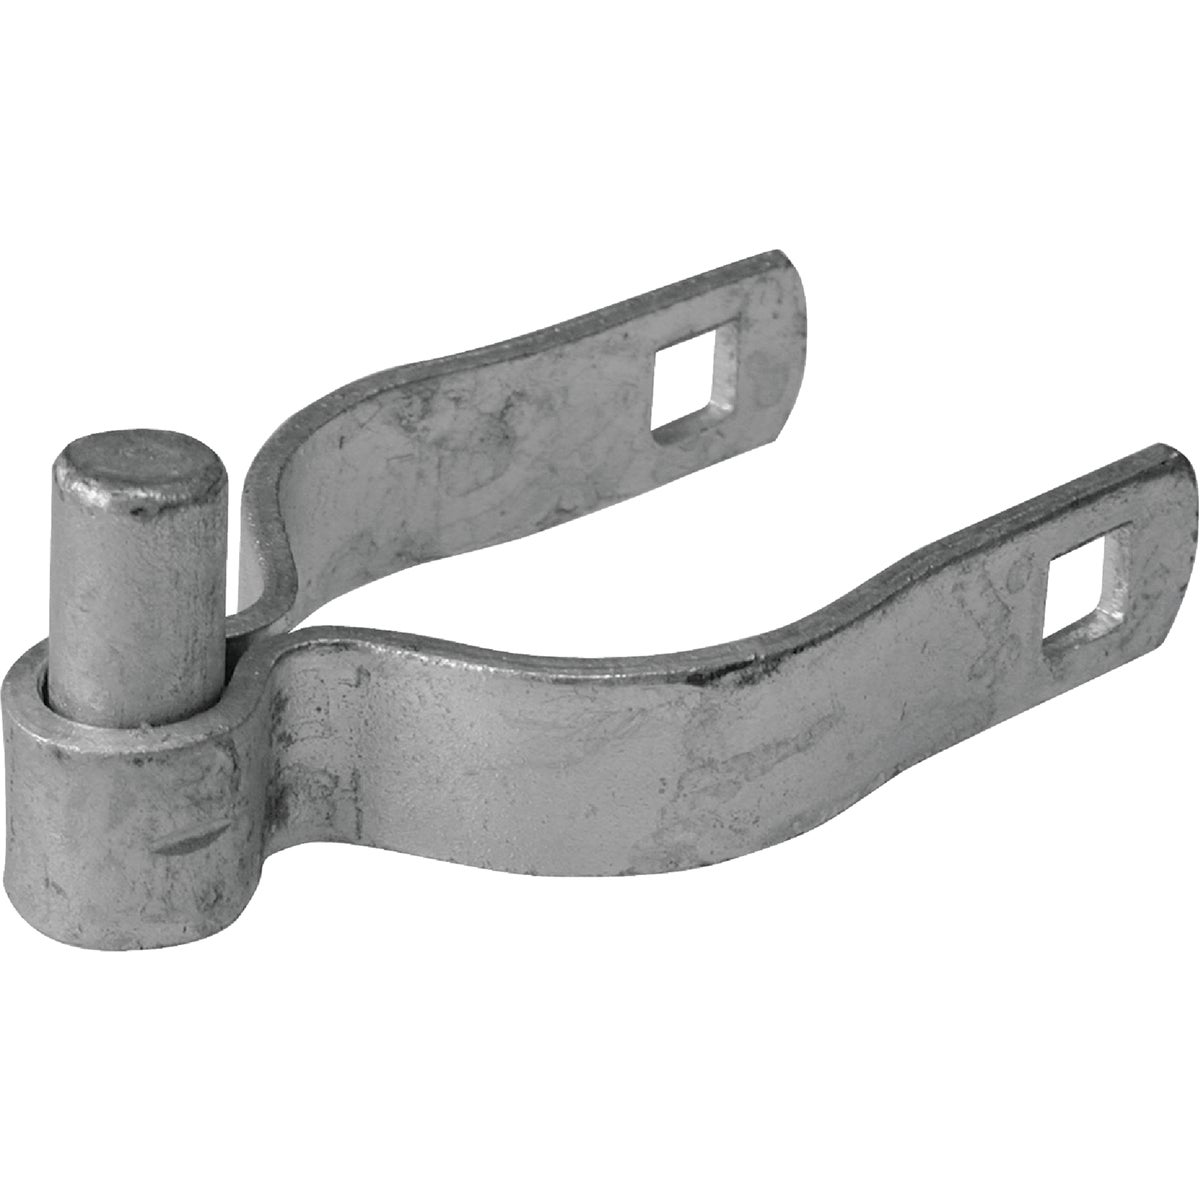 "1-7/8"" POST HINGE - 328531C by Midwest Air Tech"